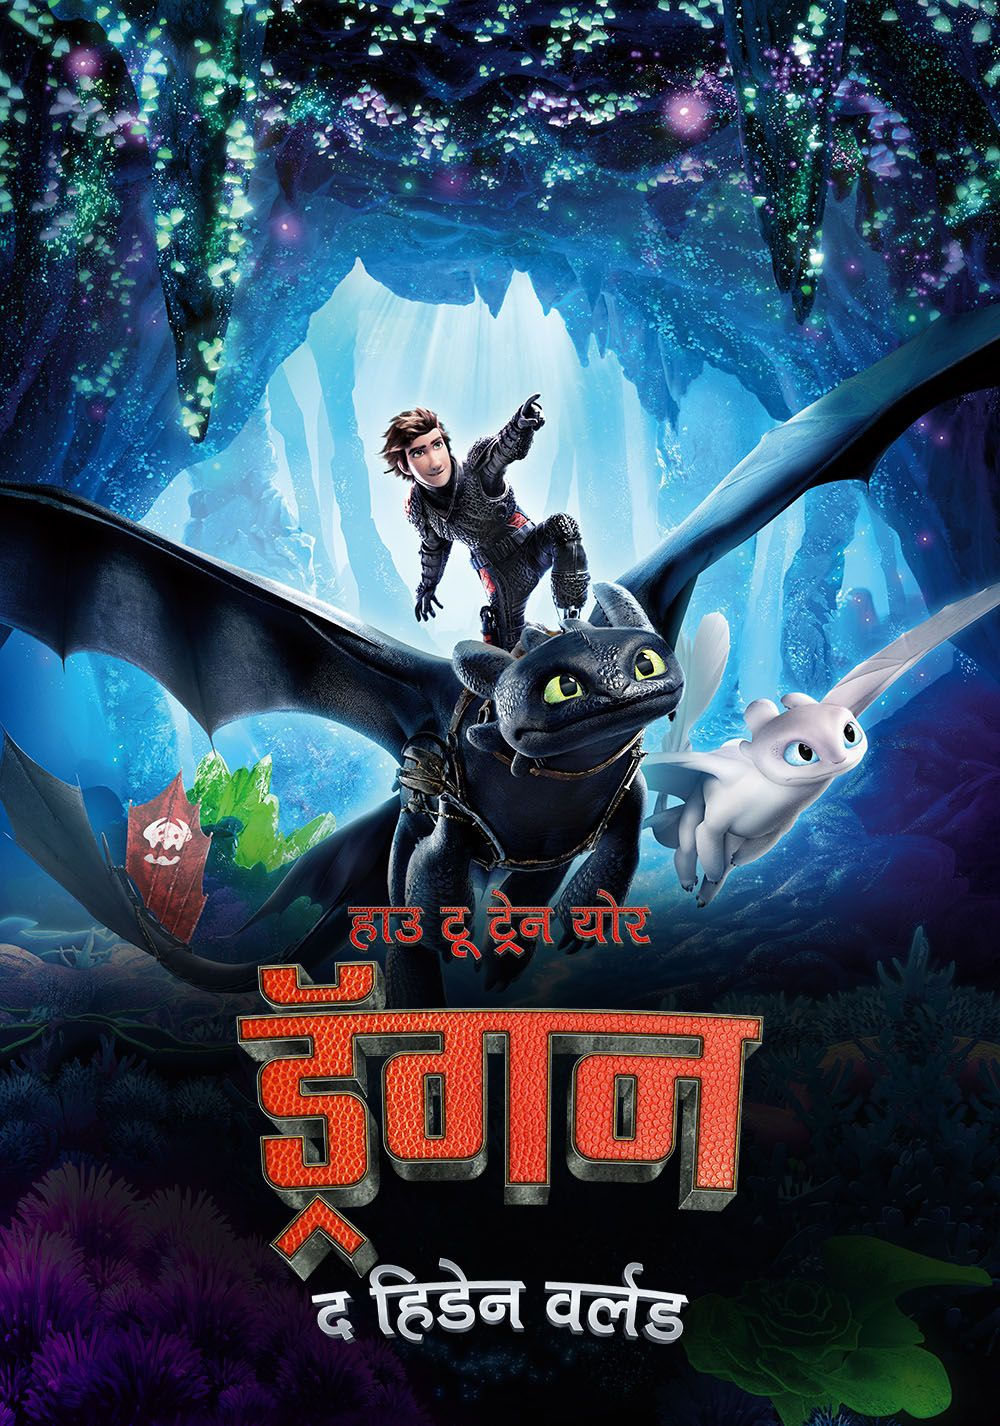 Hindi Dubbed Movie How to Train Your Dragon 3 : The Hidden